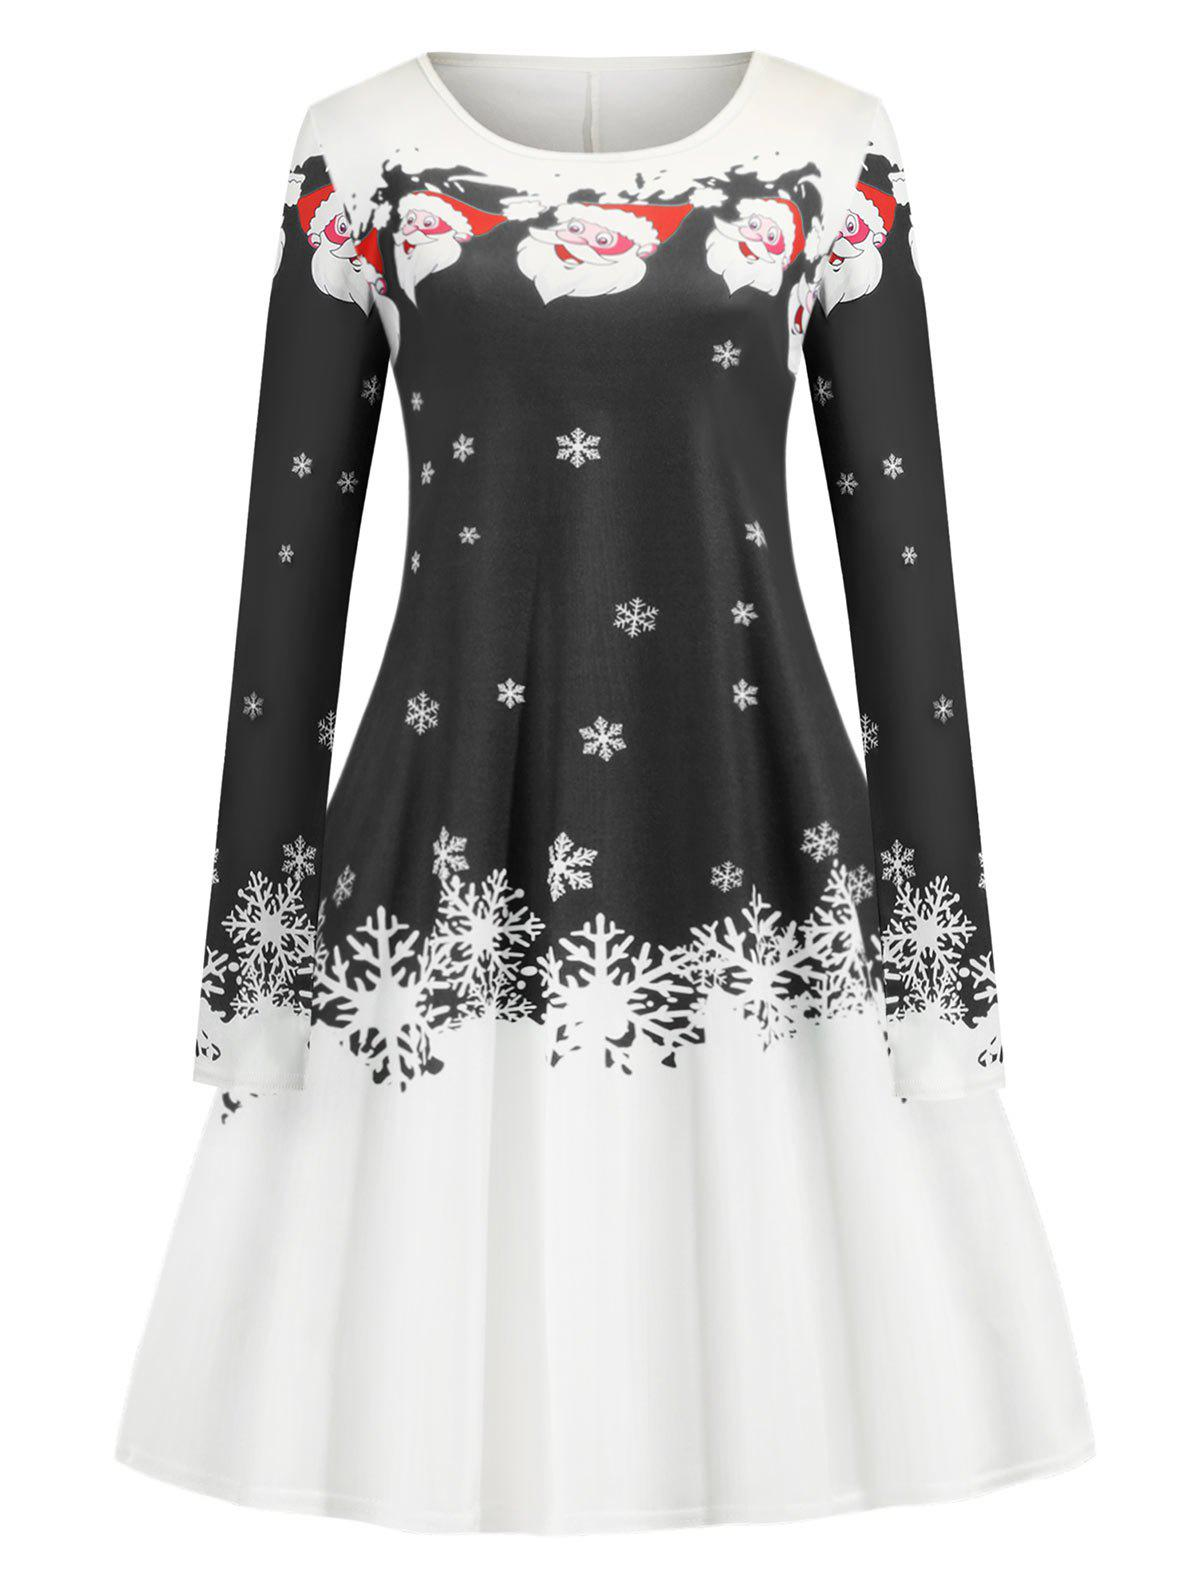 Buy Christmas Santa Claus Snowflake Print A Line Mini Dress